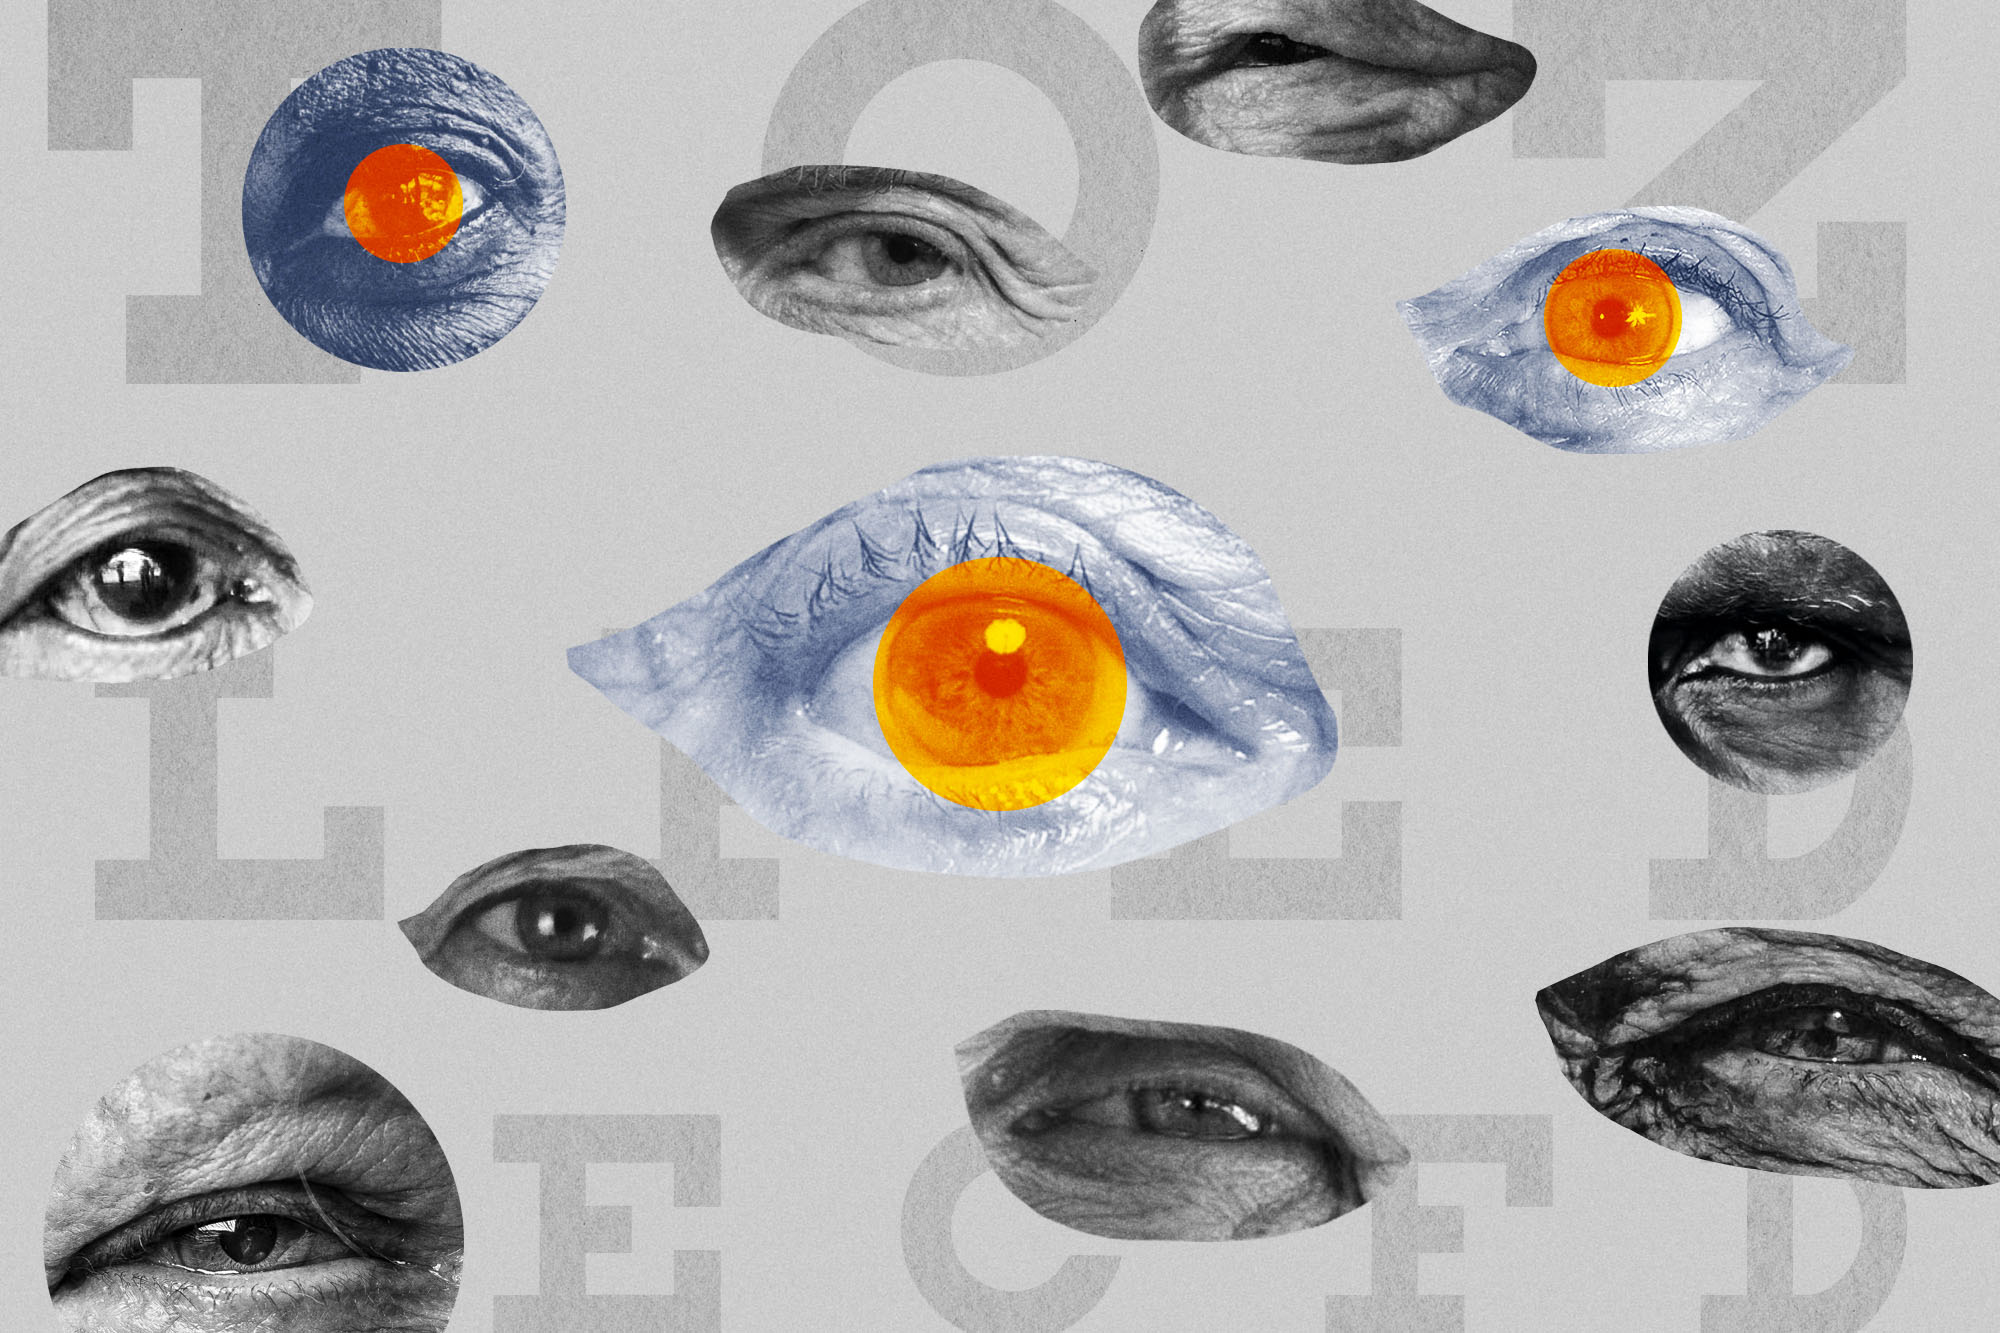 Scientists Find Toxic Buildup in Eyes of Patients With Blinding Macular Degeneration